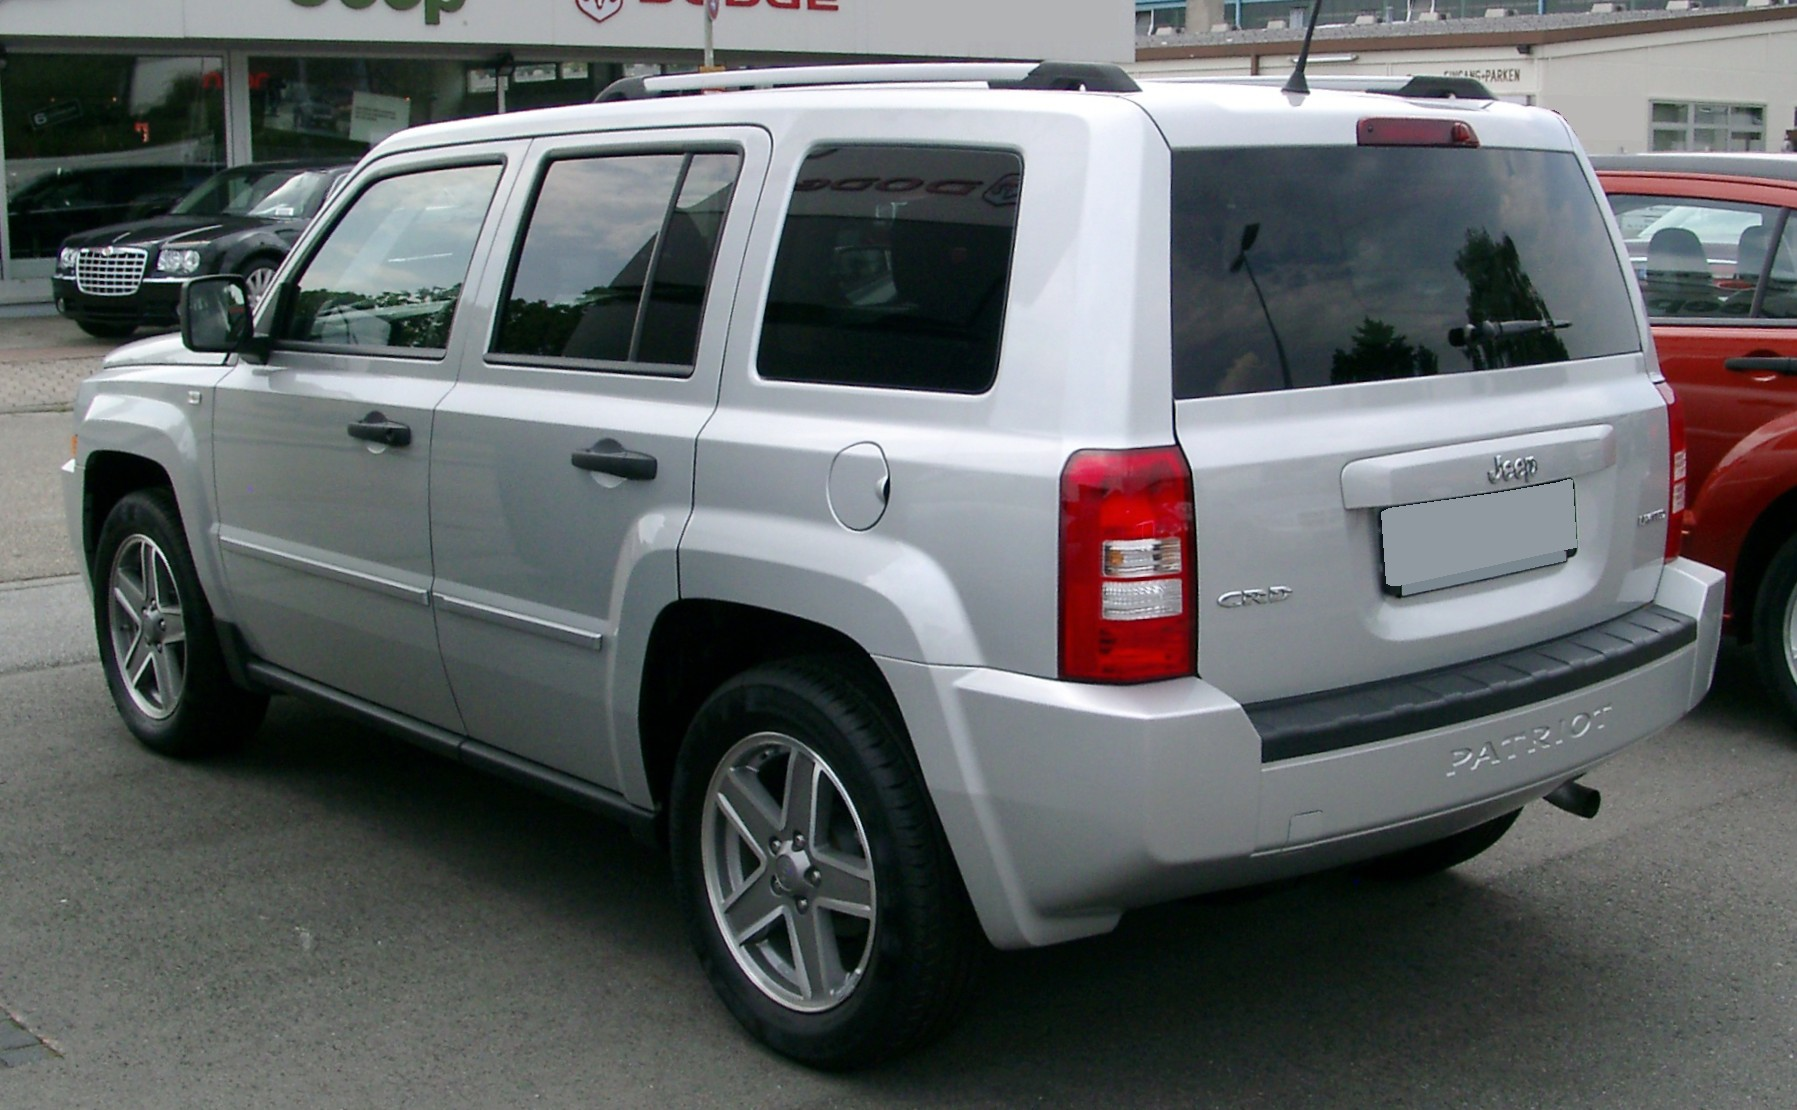 Jeep patriot rear 20080727